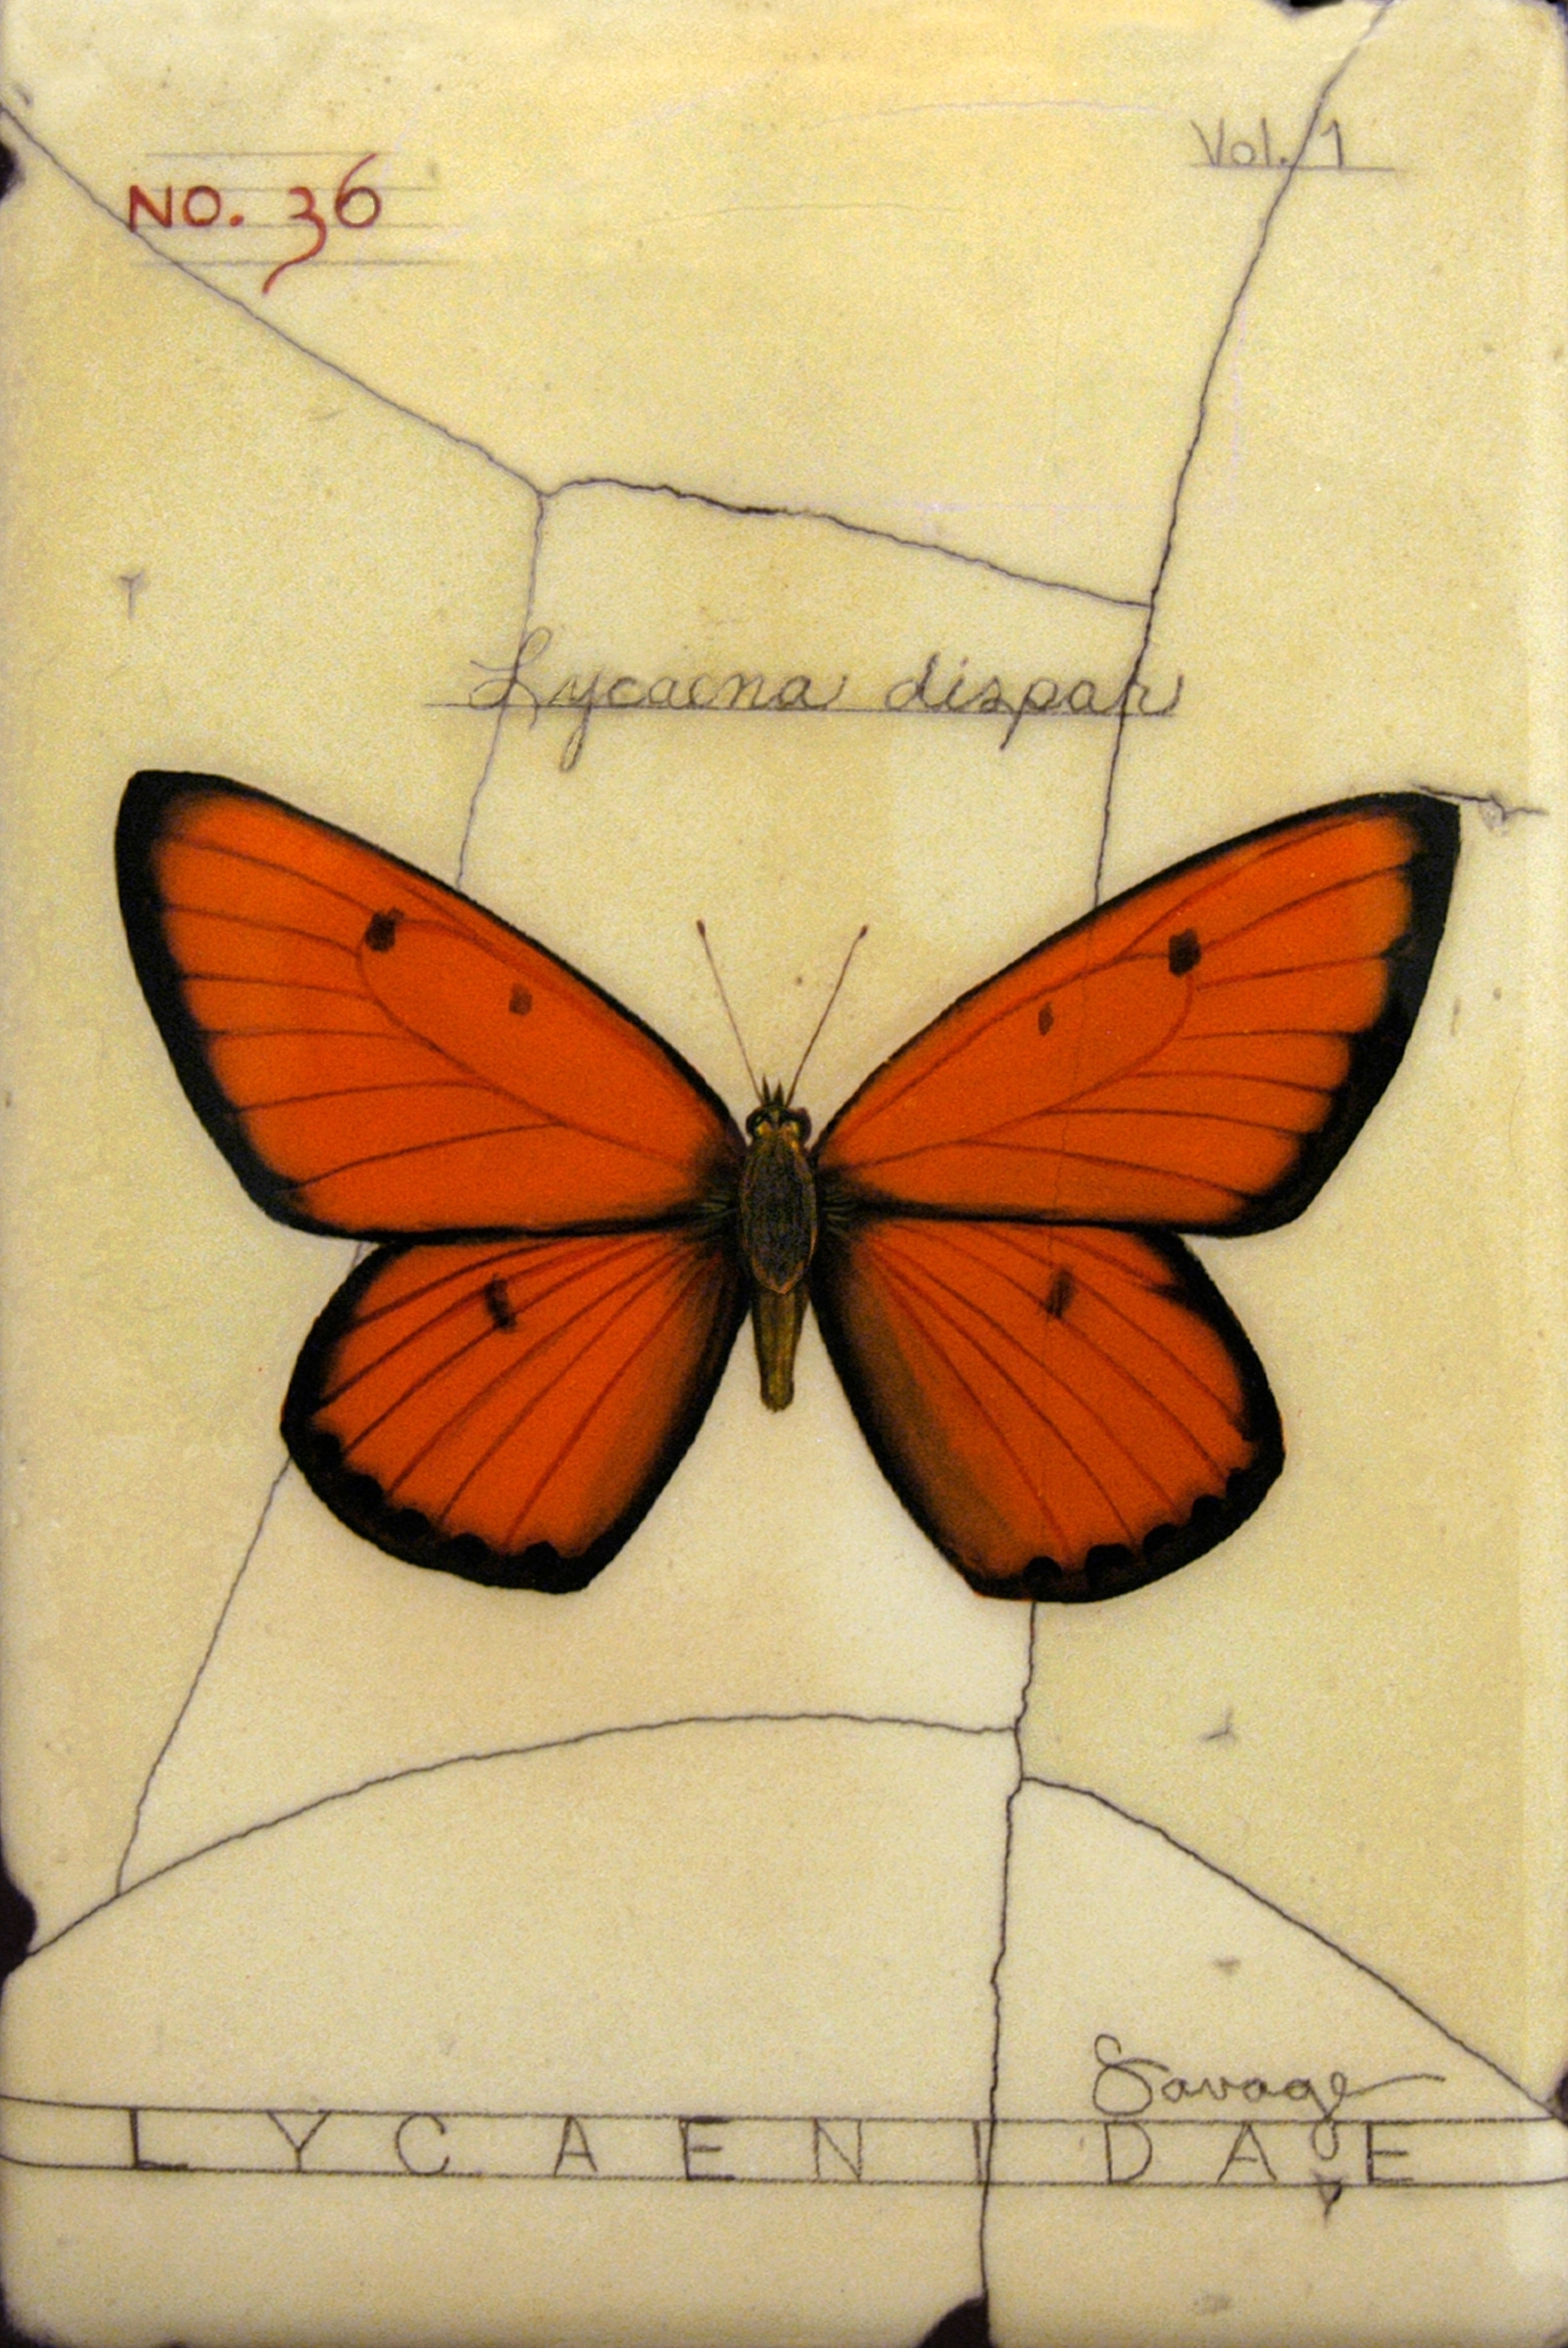 No. 36 Large Copper Butterfly